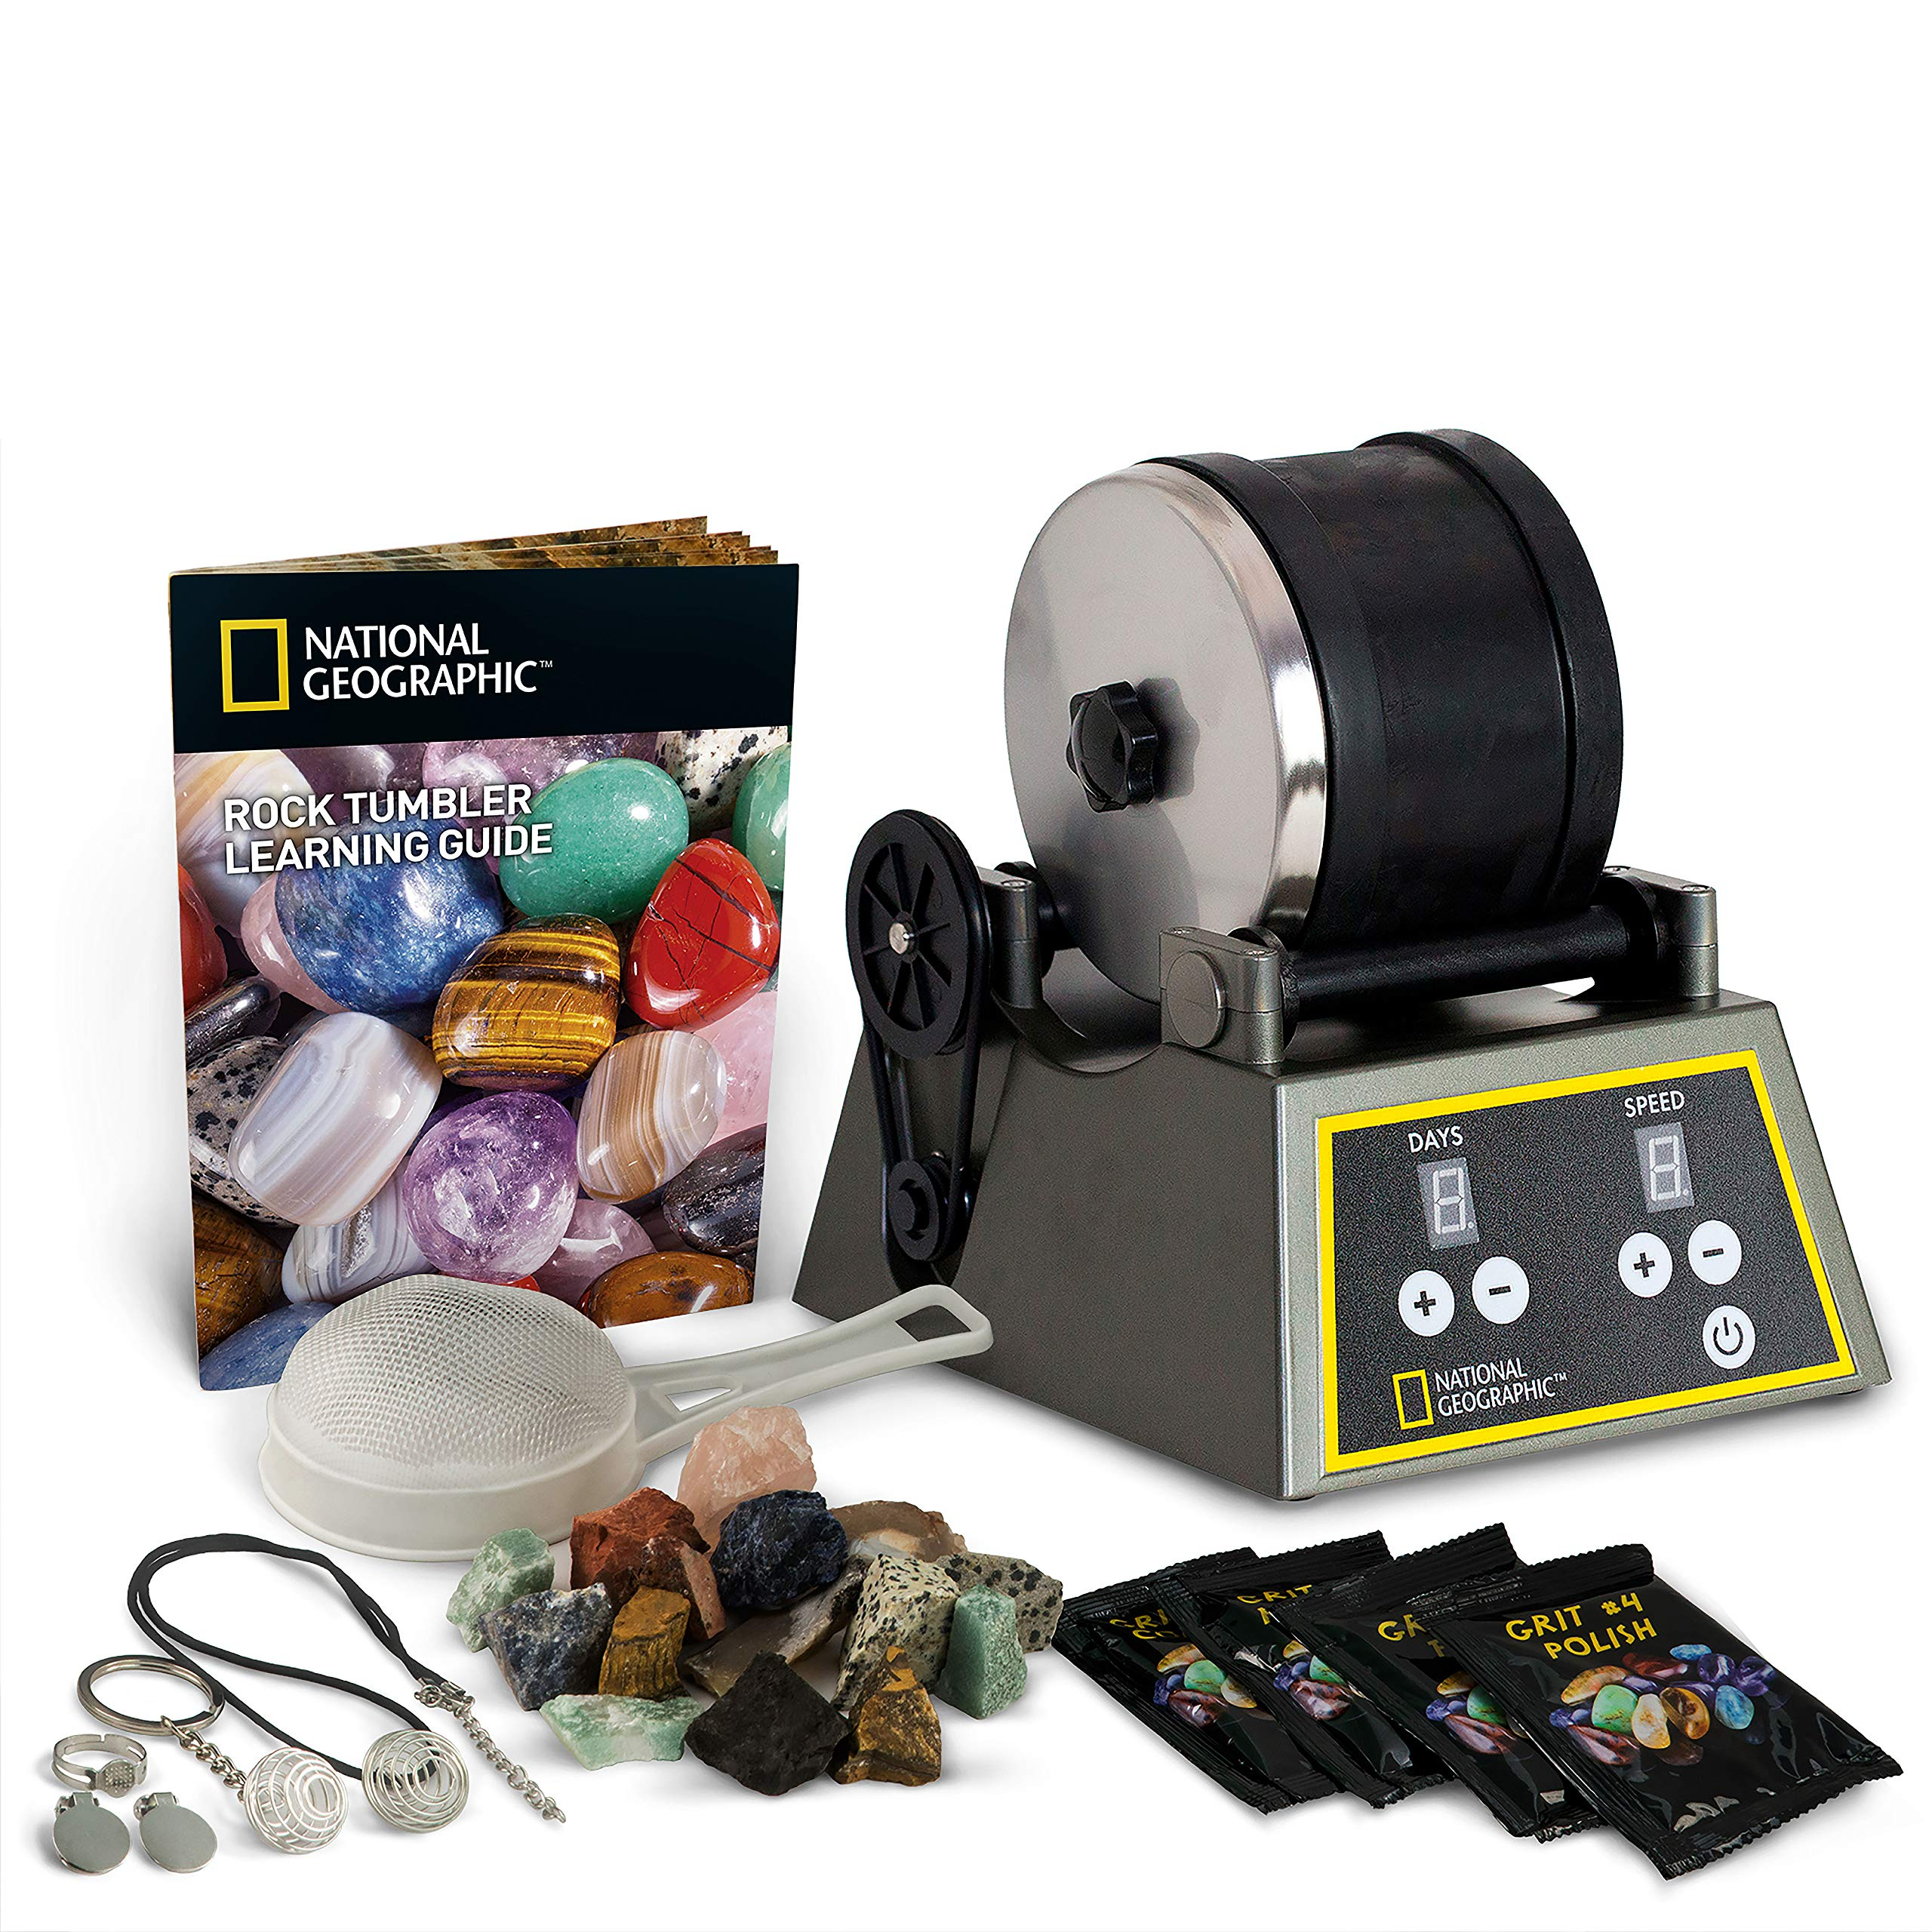 NATIONAL GEOGRAPHIC Professional Rock Tumbler Kit- Advanced features include Shutoff Timer and Speed Control - 2lb Barrel, 1lb Gemstones, 4 Polishing Grits, Jewelry Fastenings and Learning Guide by NATIONAL GEOGRAPHIC